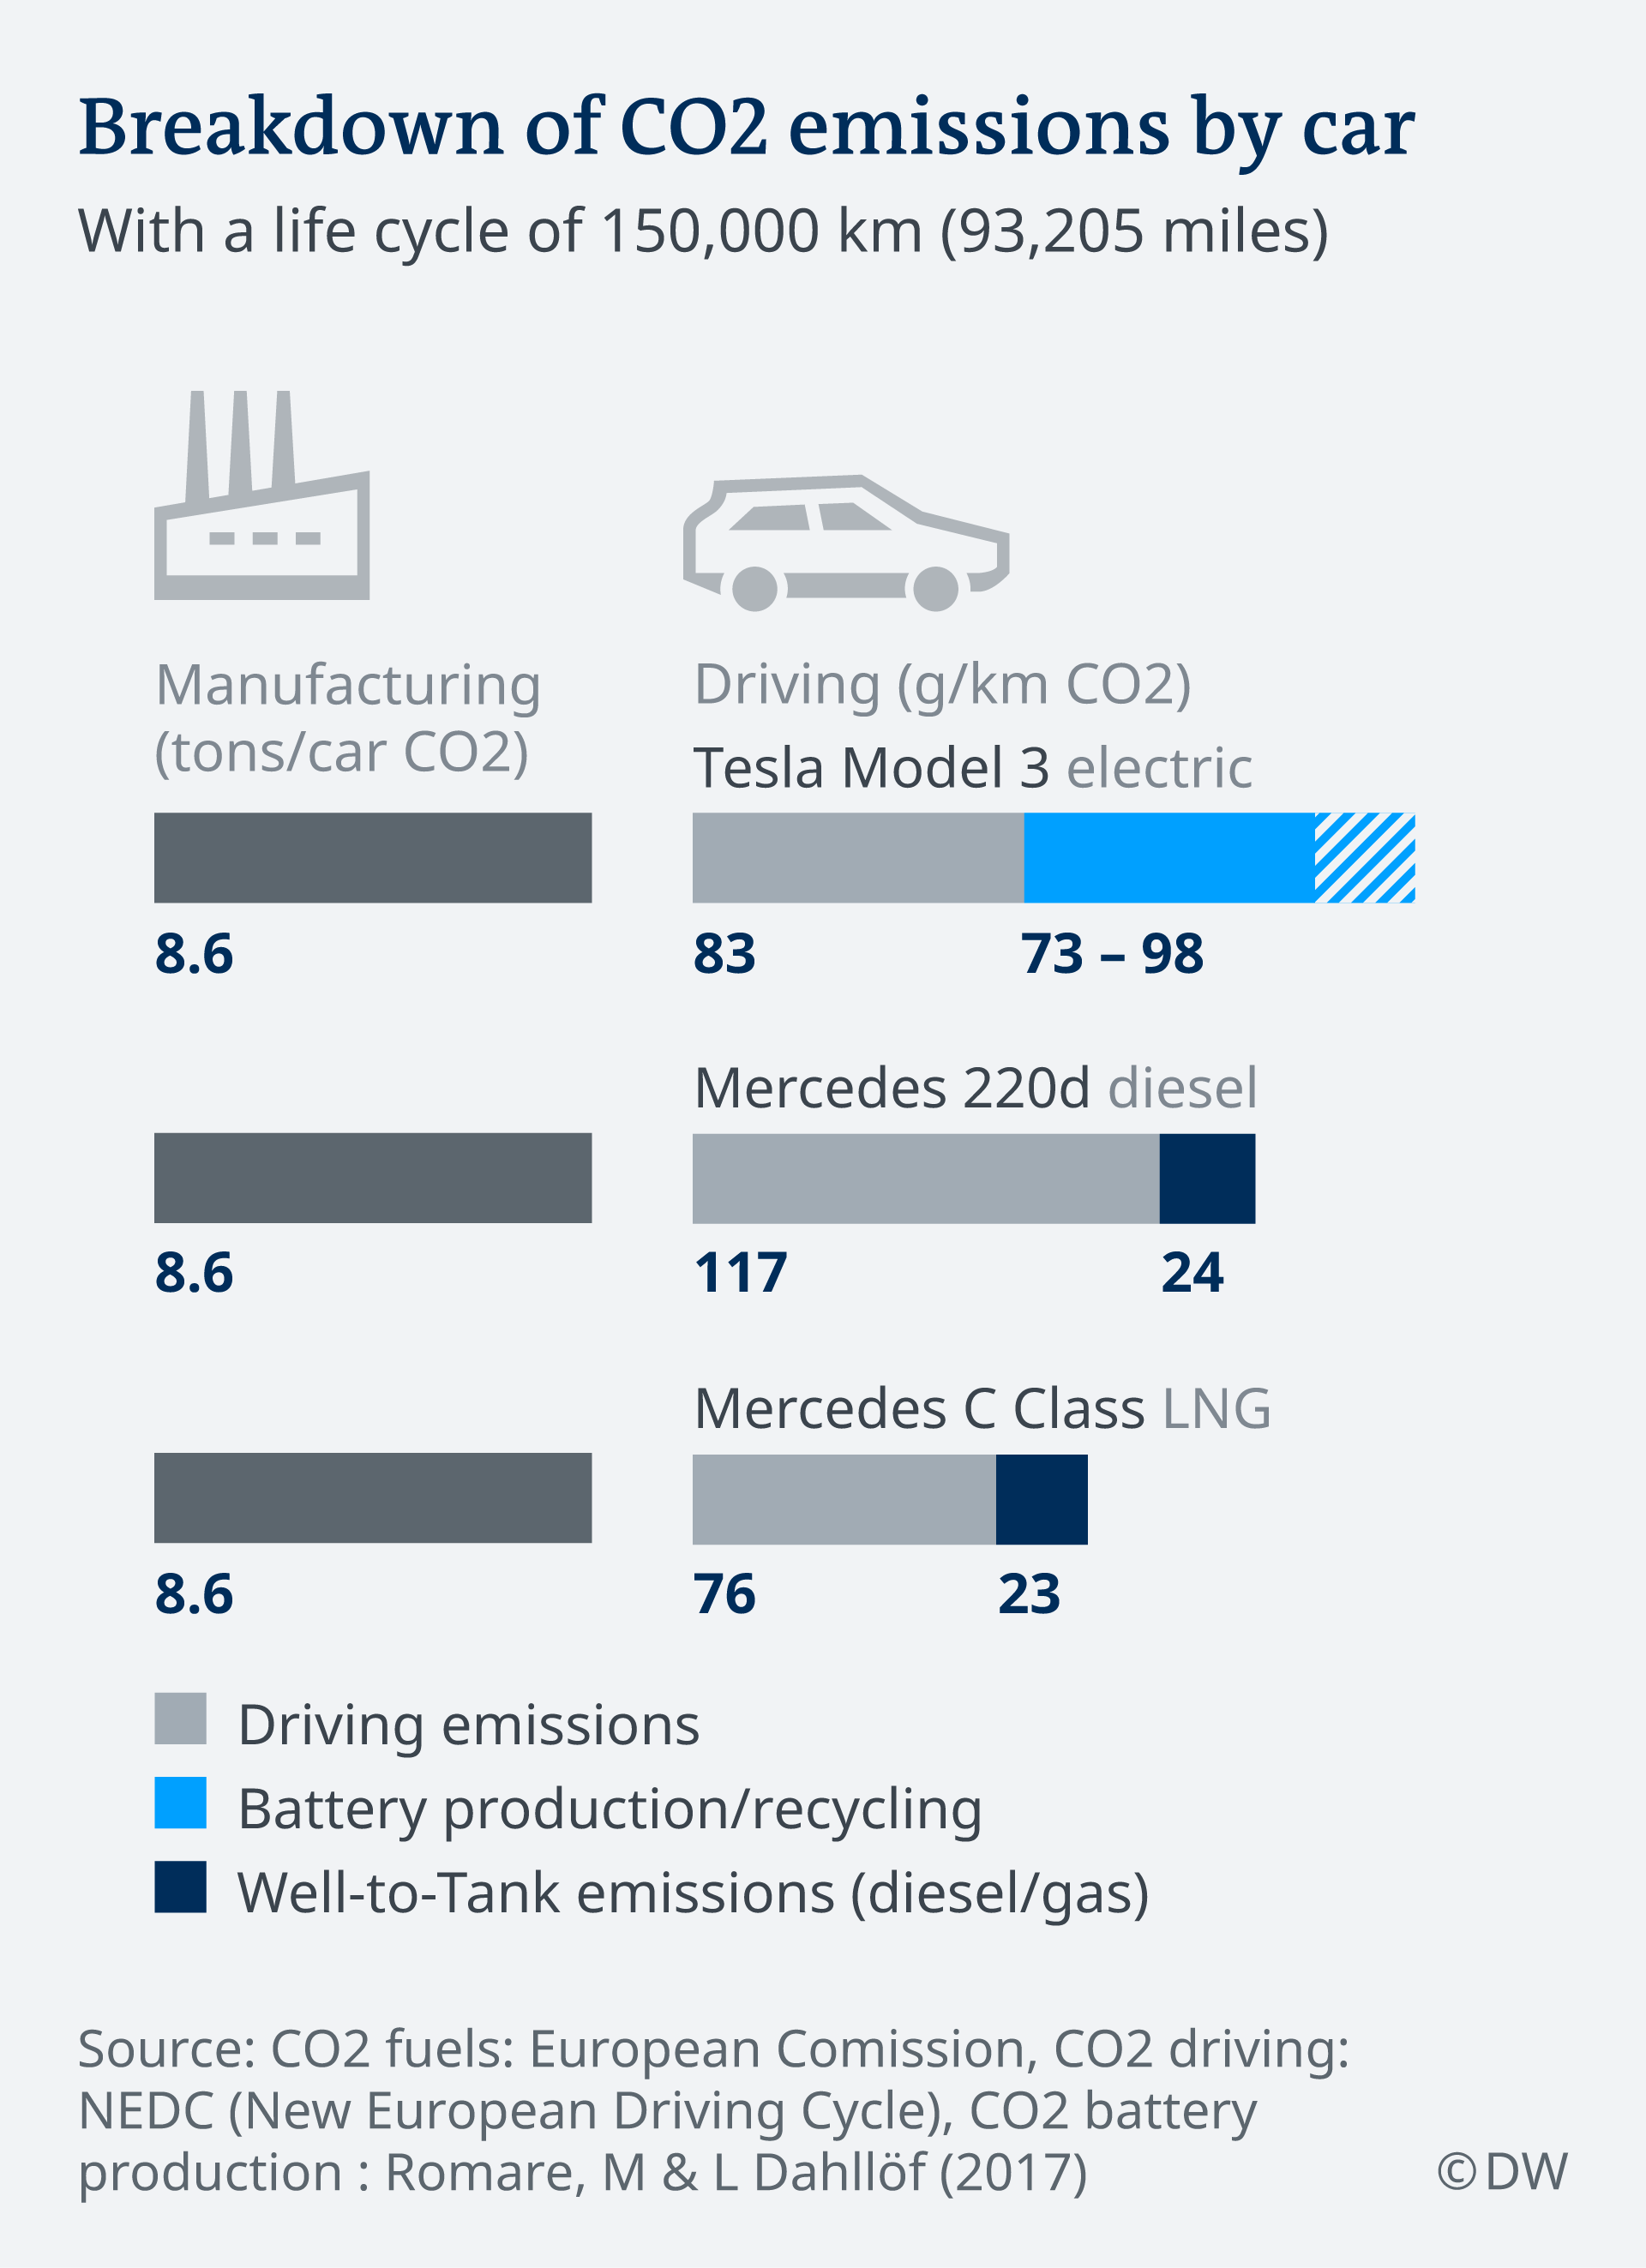 Ifo study casts doubt on electric vehicles′ climate-saving